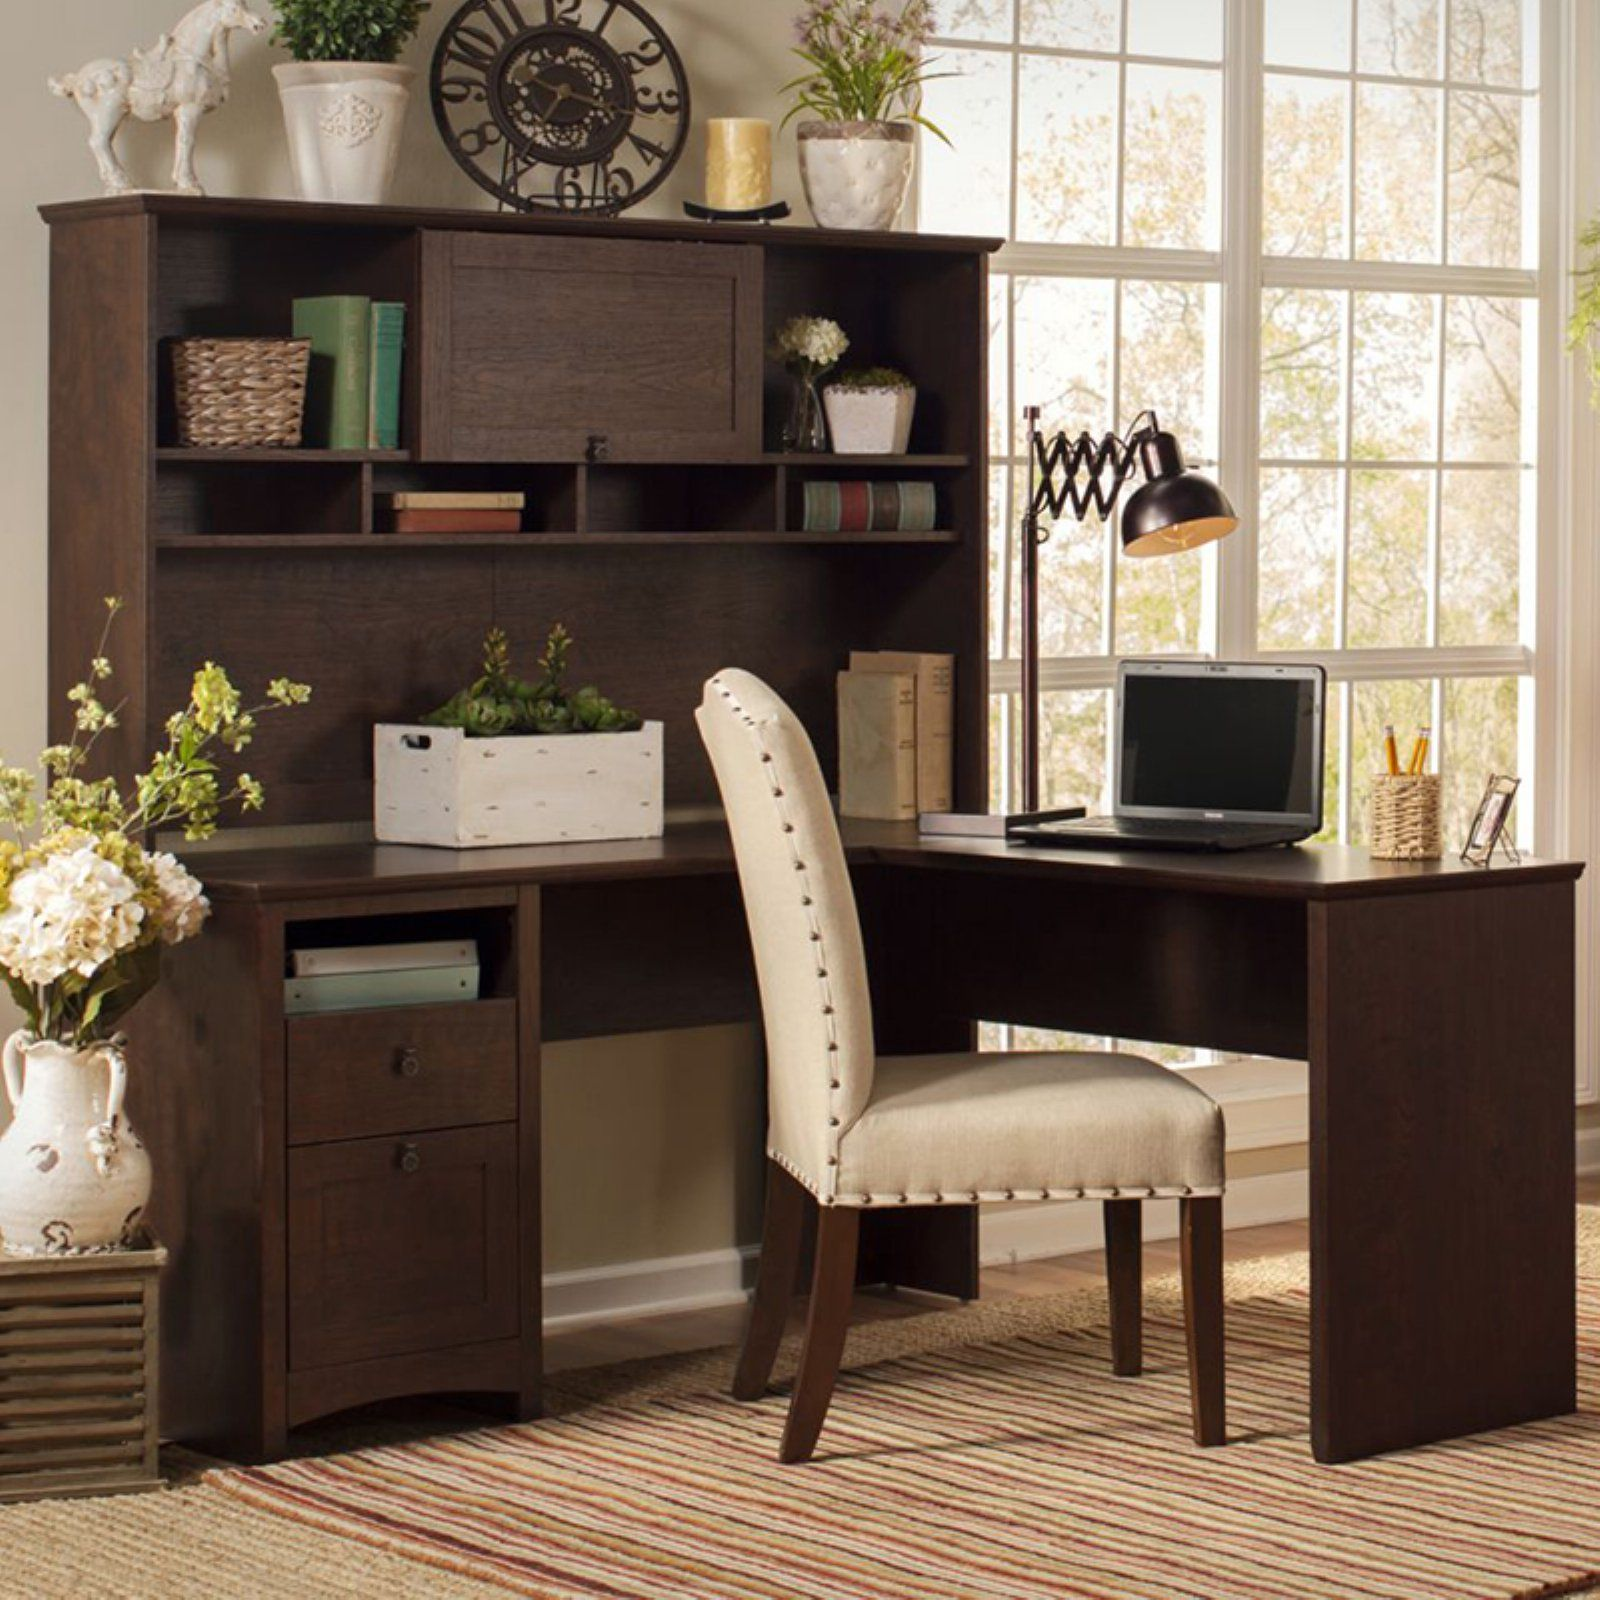 Bush Furniture Buena Vista 60 In L Shaped Desk With Hutch